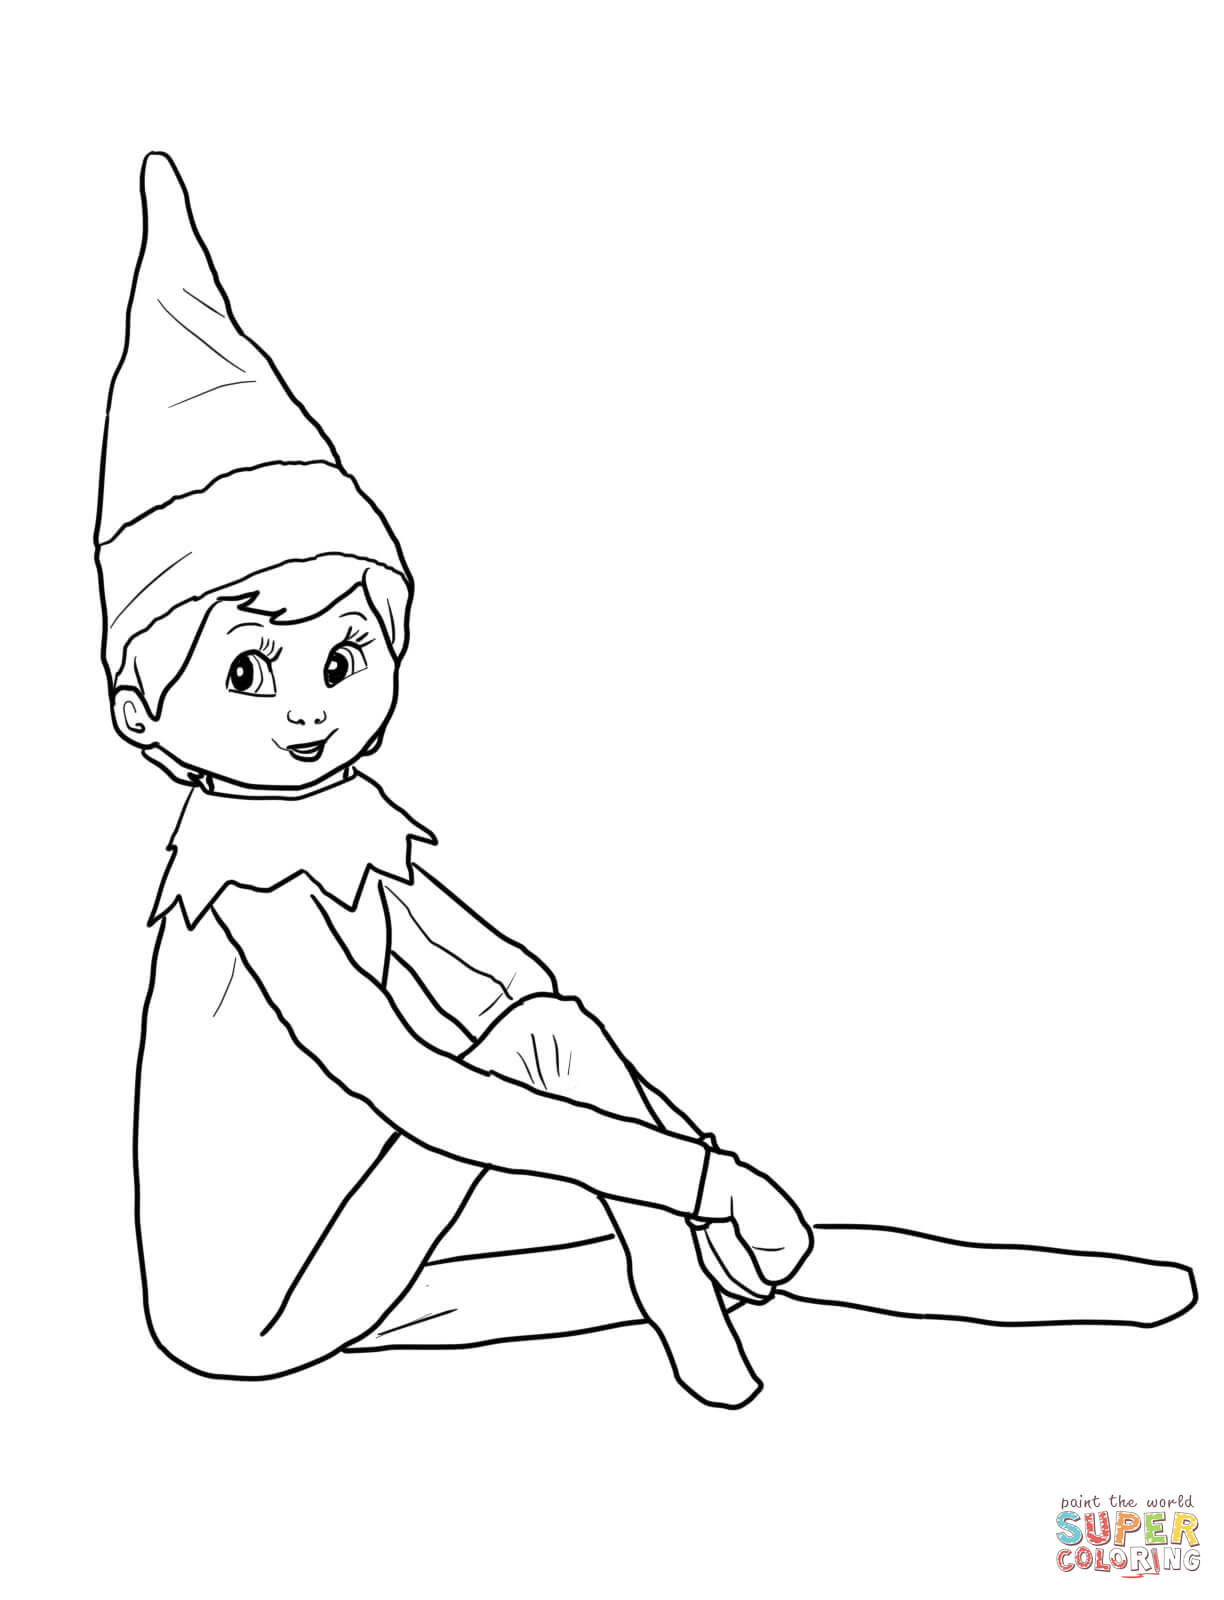 Elf On The Shelf Coloring Pages Free Coloring Pages